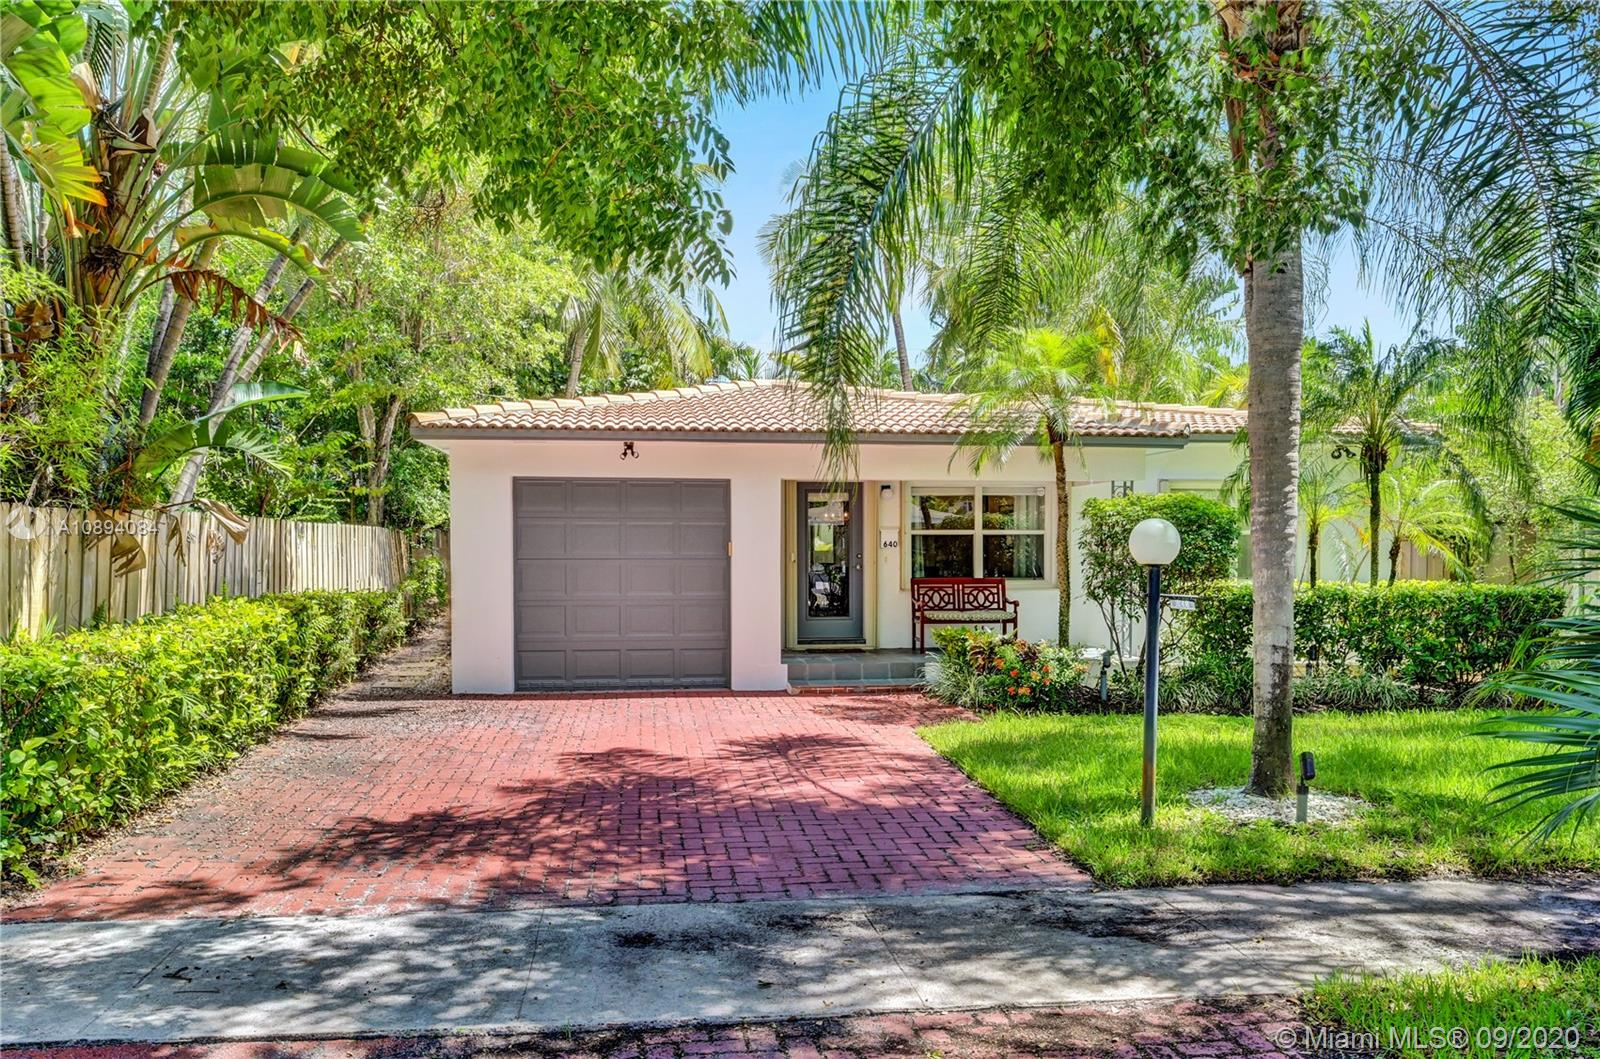 Great value for an updated pool home on a great street in Victoria Park. Large Lot with Sunny 2 bedrooms /2 bathrooms with Florida room and a screened porch overlooking a refinished pool and private yard. Kitchen and both bathrooms recently renovated. Use as vacation home and airbnb rentals. Hardwood floors and impeccable and freshly painted. Enjoy walkable location to Las Olas blvd and Victoria park. Accordion shutters. Move in ready. Airbnb projection buying a great home with a free great business, last year income airbnb $41,022.10.